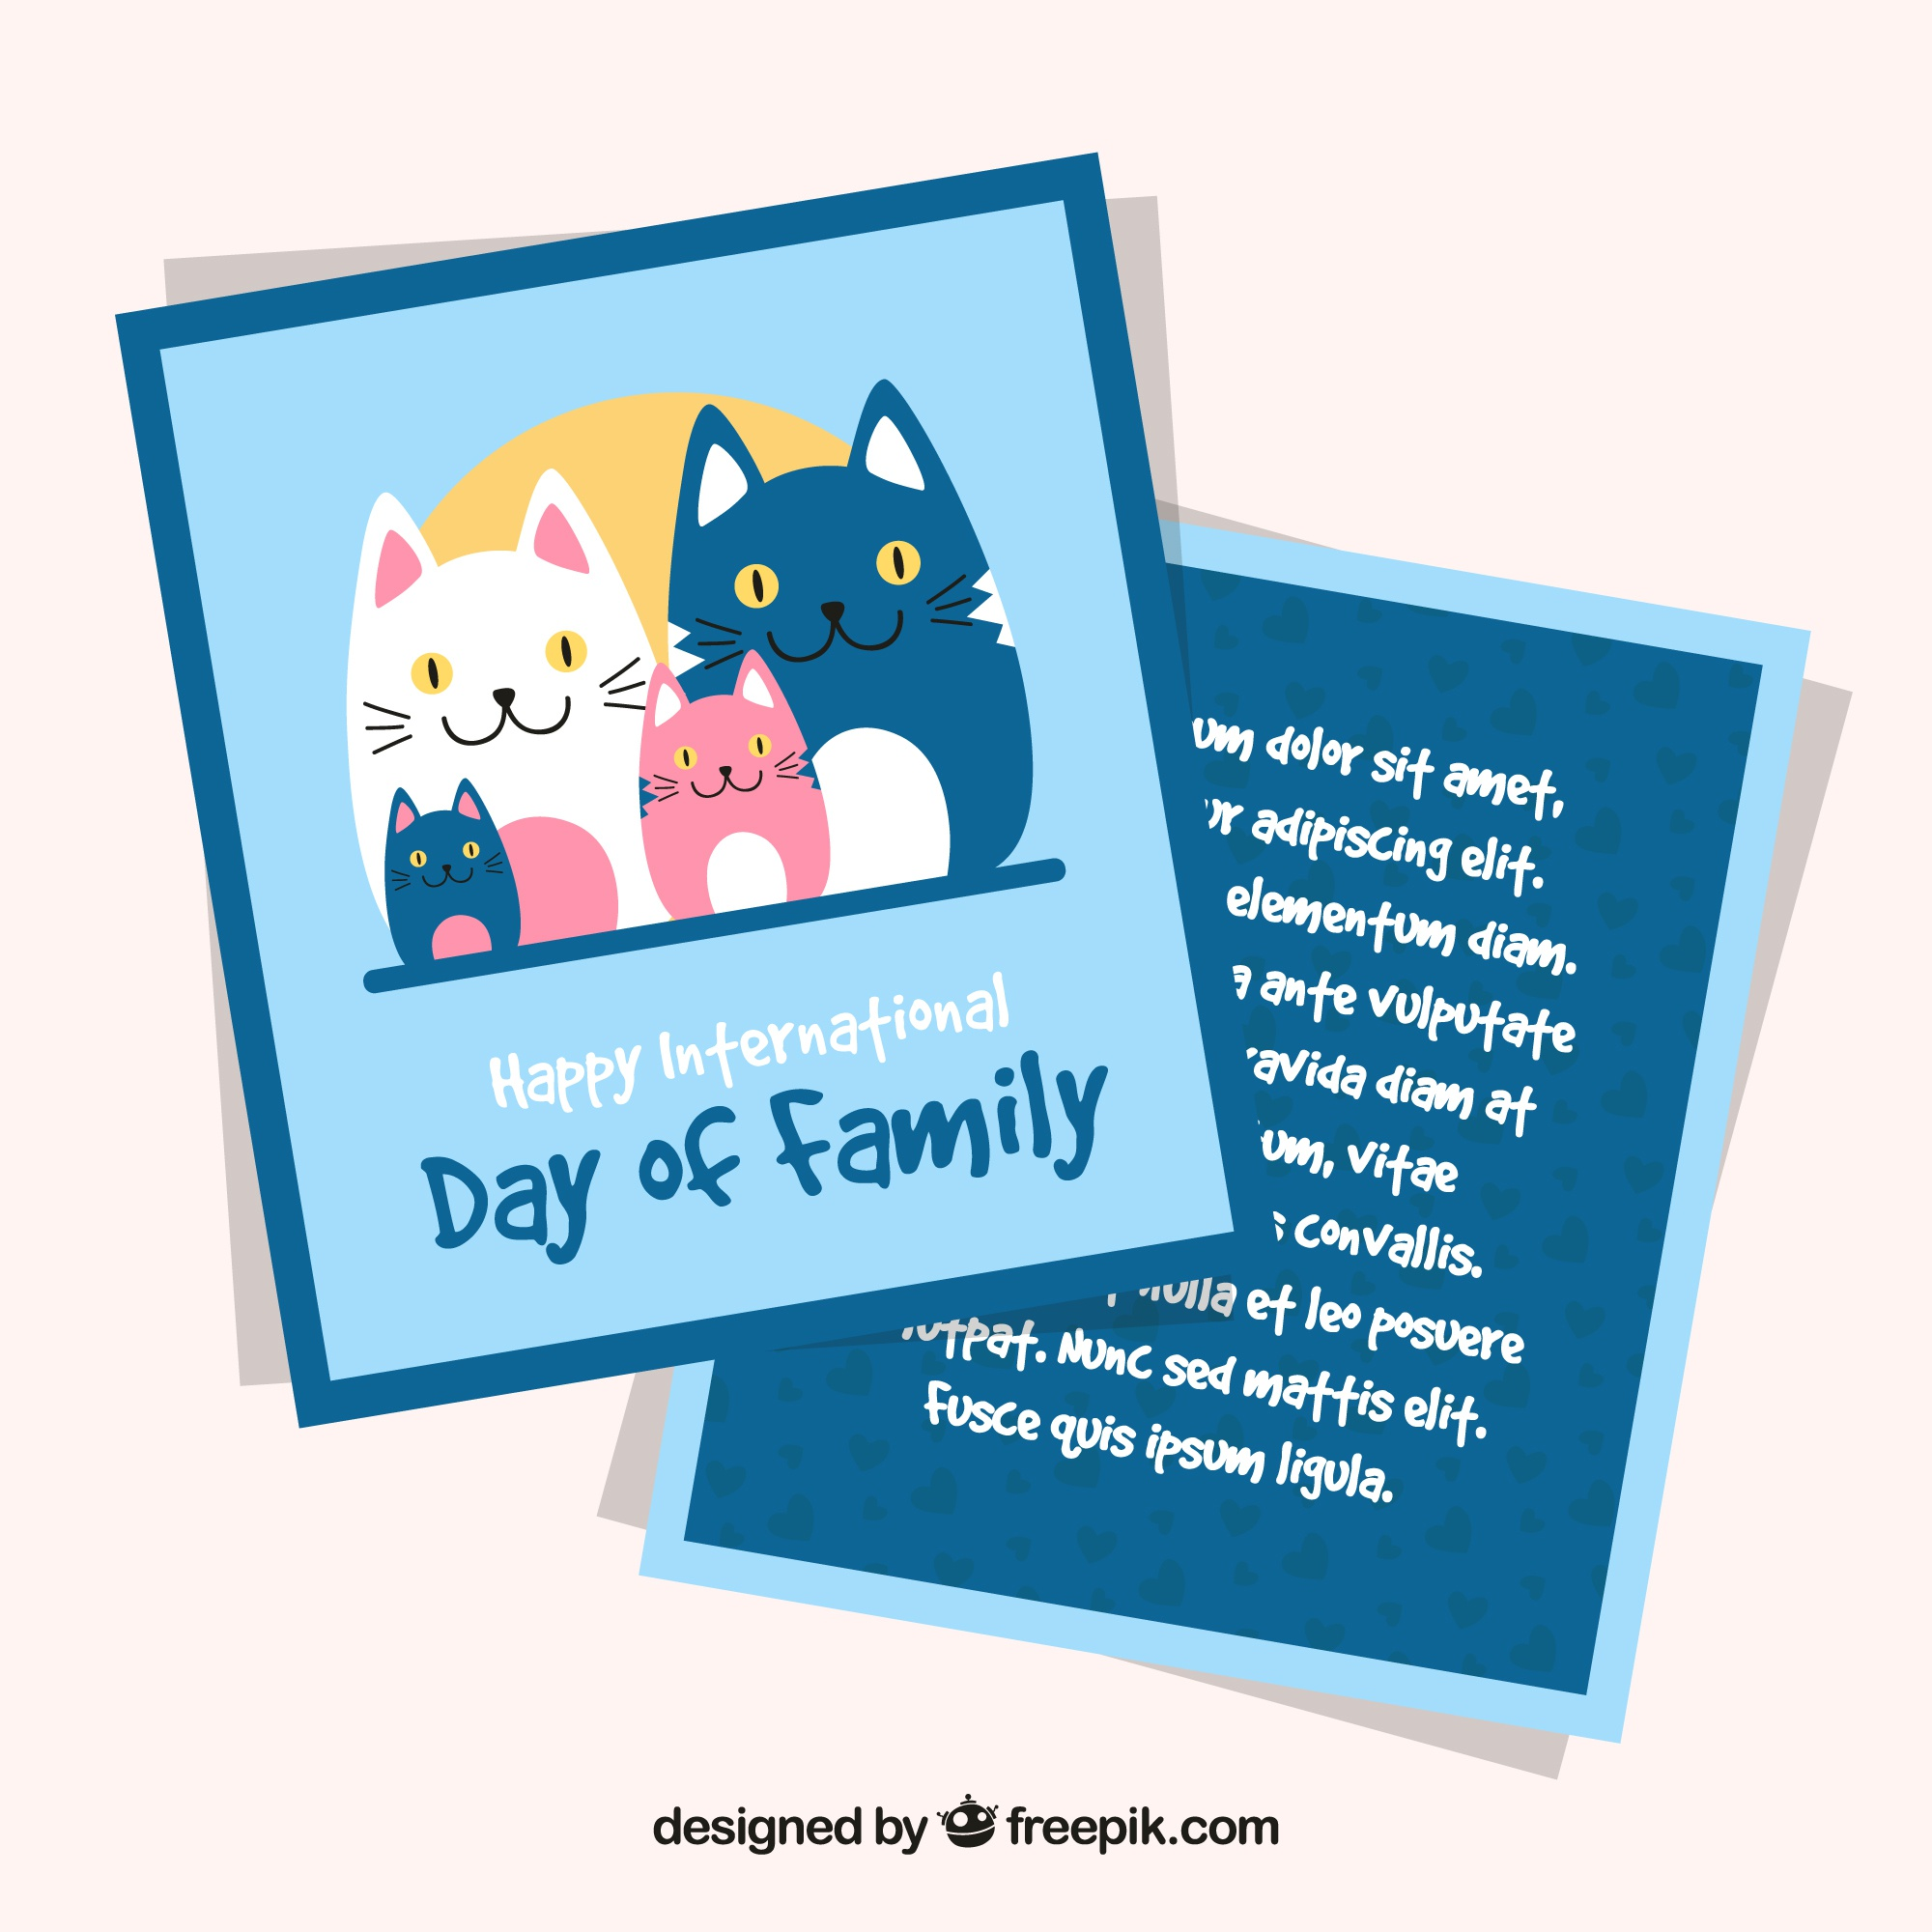 Greeting card with cute cats